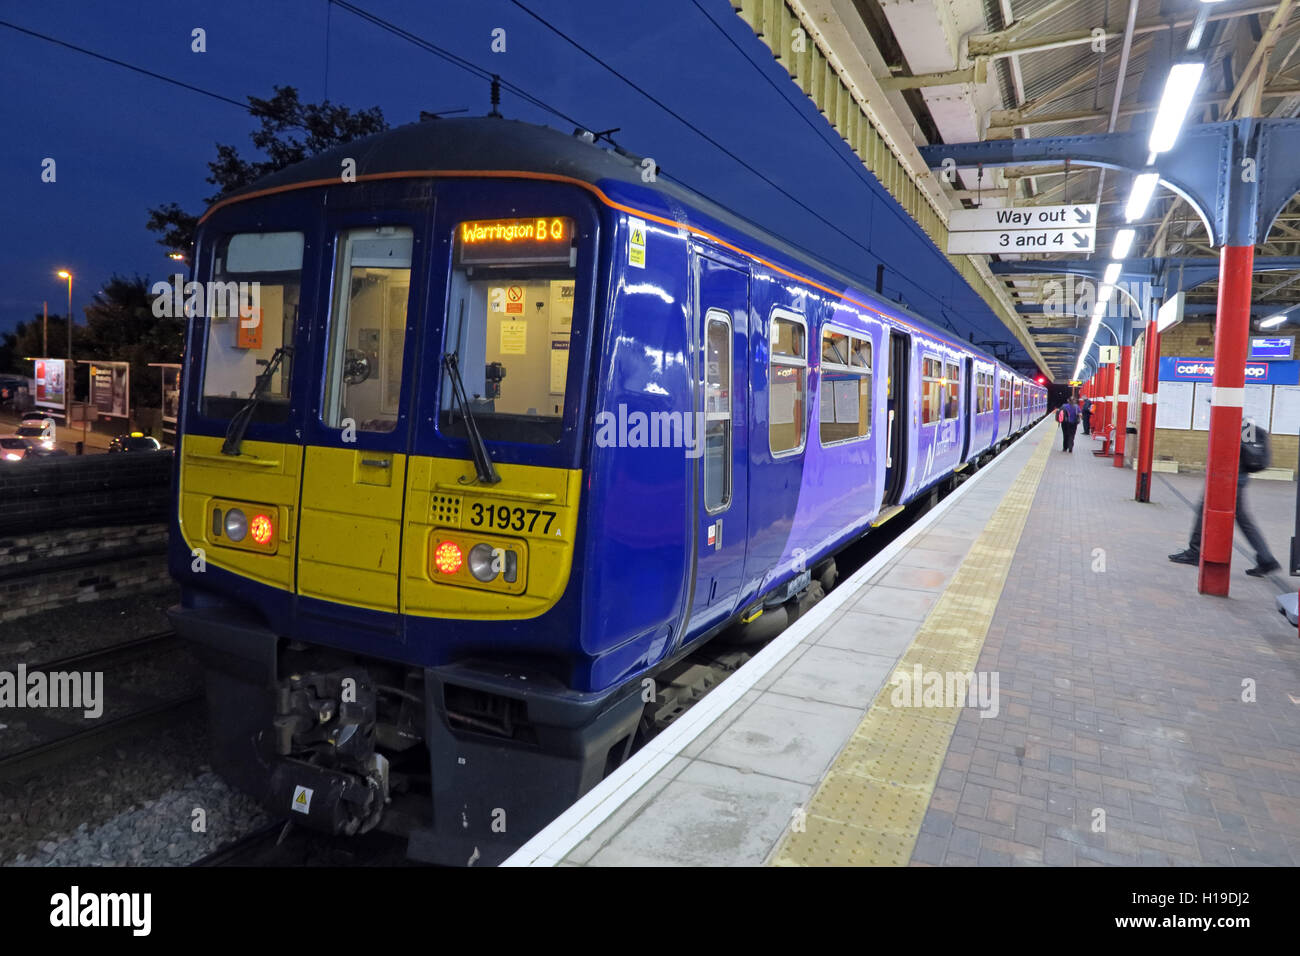 brand,branded,trains,privatised,privitised,franchise,subsidised,abellio,bank,britain,electric,England,GB,Great,network,north,purple,Northern,passenger,powerhouse,quay,rail,BR,railway,service,train,transport,integrated,travel,UK,unit,west,carriage,319,class,Branded train,Northern Powerhouse,GoTonySmith,@HotpixUK,Tony,Smith,different,unique,Class319,EMU,Unit,Station,Cheshire,England,UK,Buy Pictures of,Buy Images Of,Images of,Stock Images,Tony Smith,Photo of,Class 319